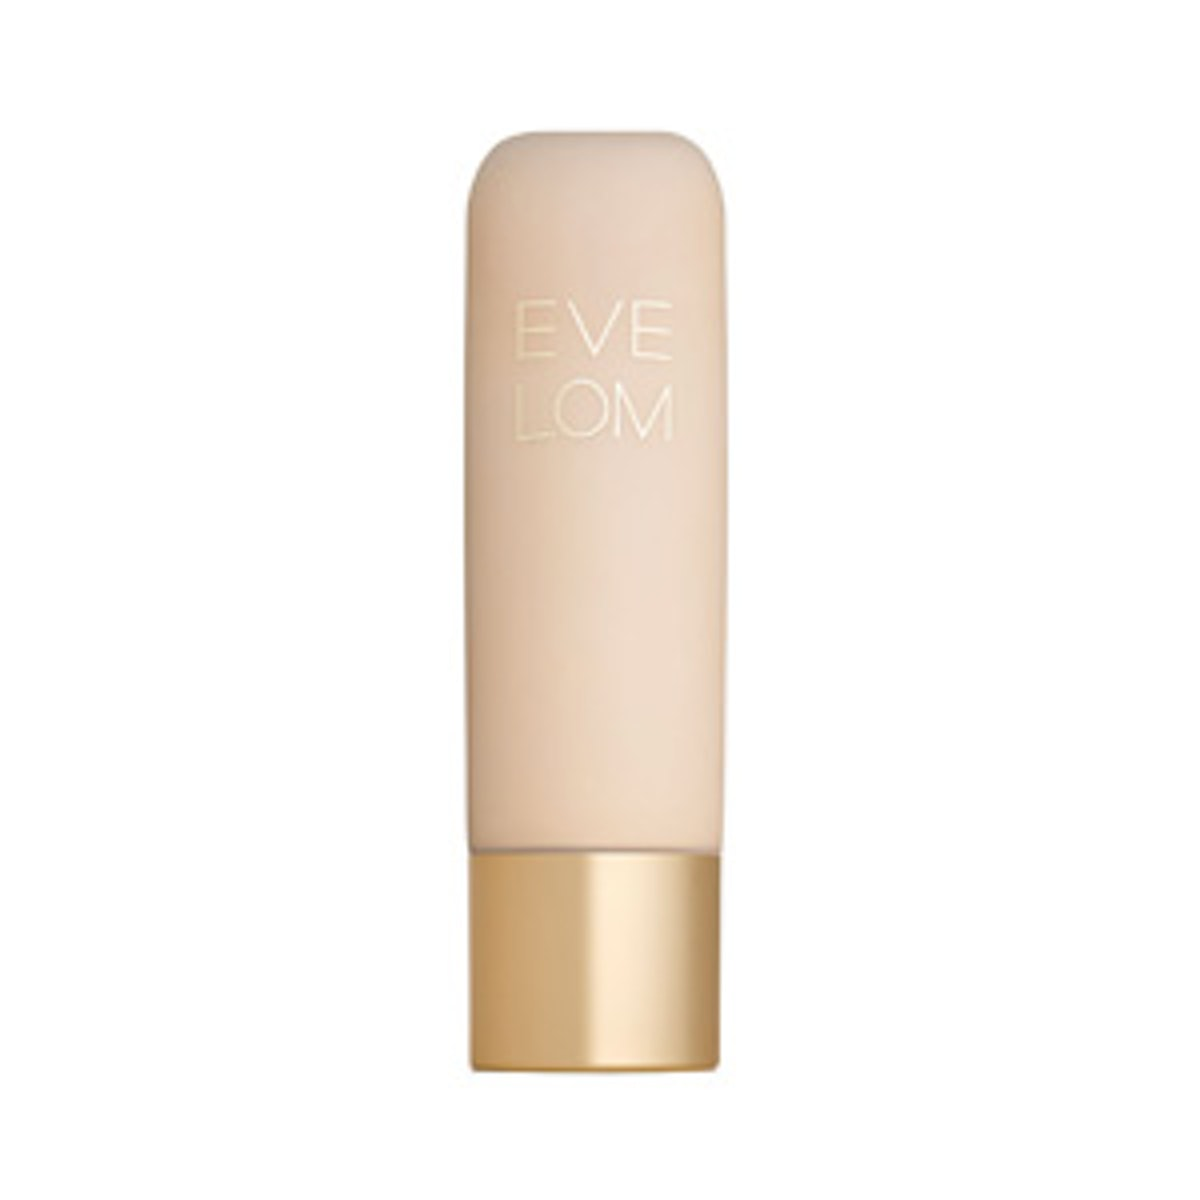 SPF 15 Radiance Perfected Tinted Moisturizer